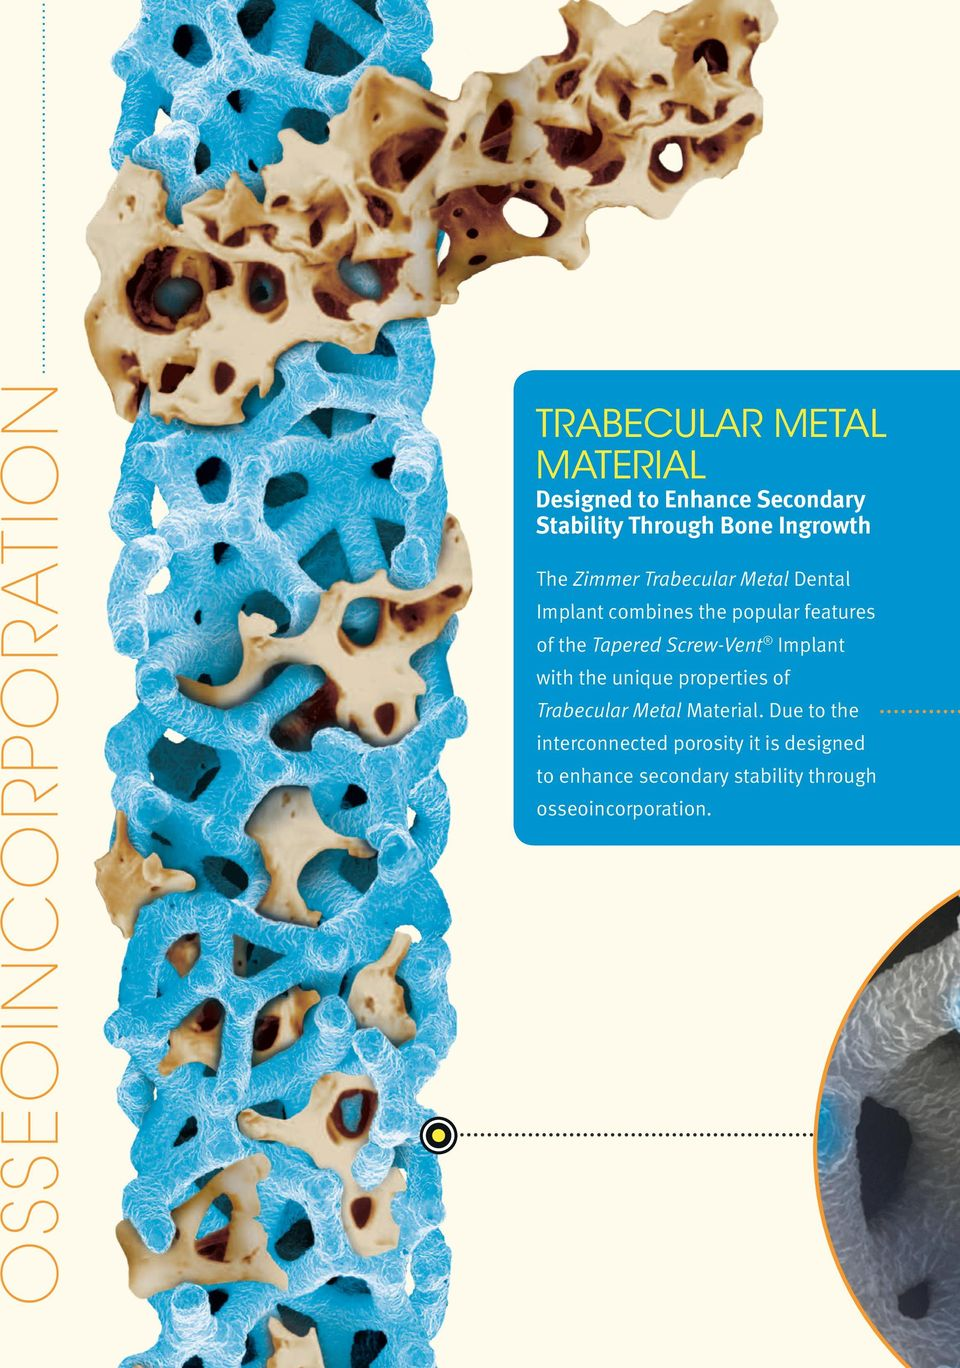 Tapered Screw-Vent Implant with the unique properties of Trabecular Metal Material.